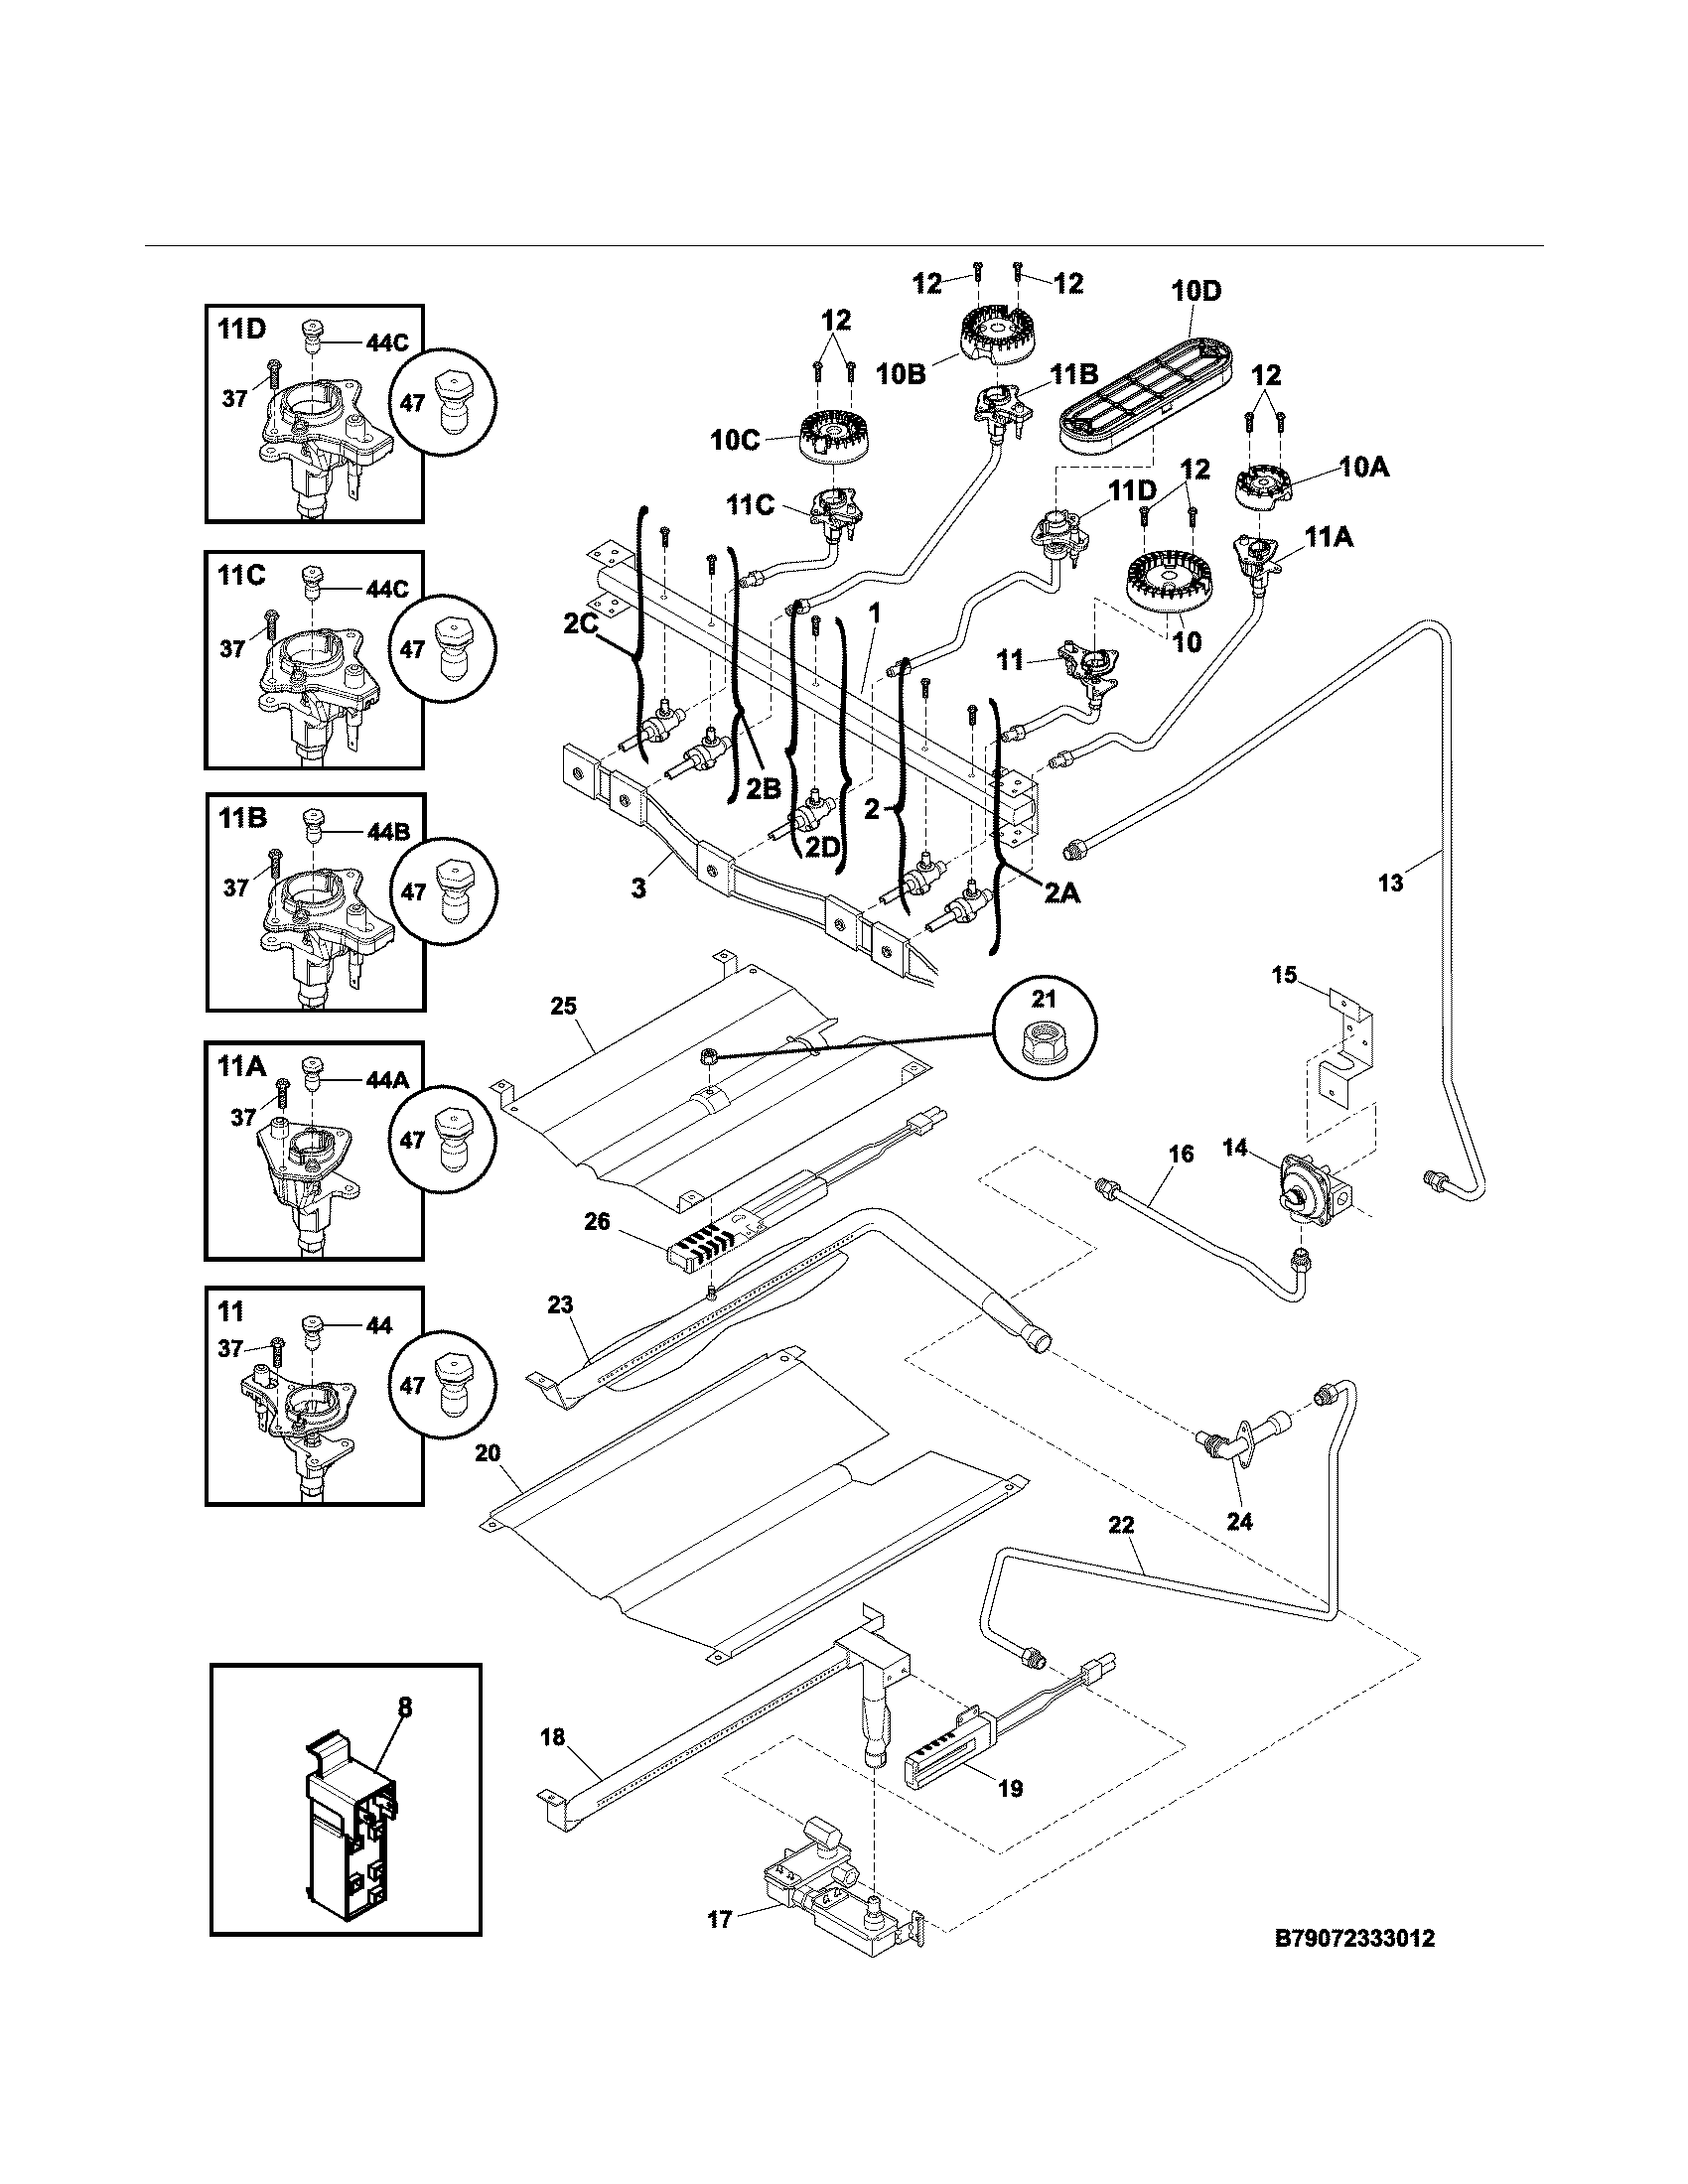 Kenmore 79074233311 burner diagram